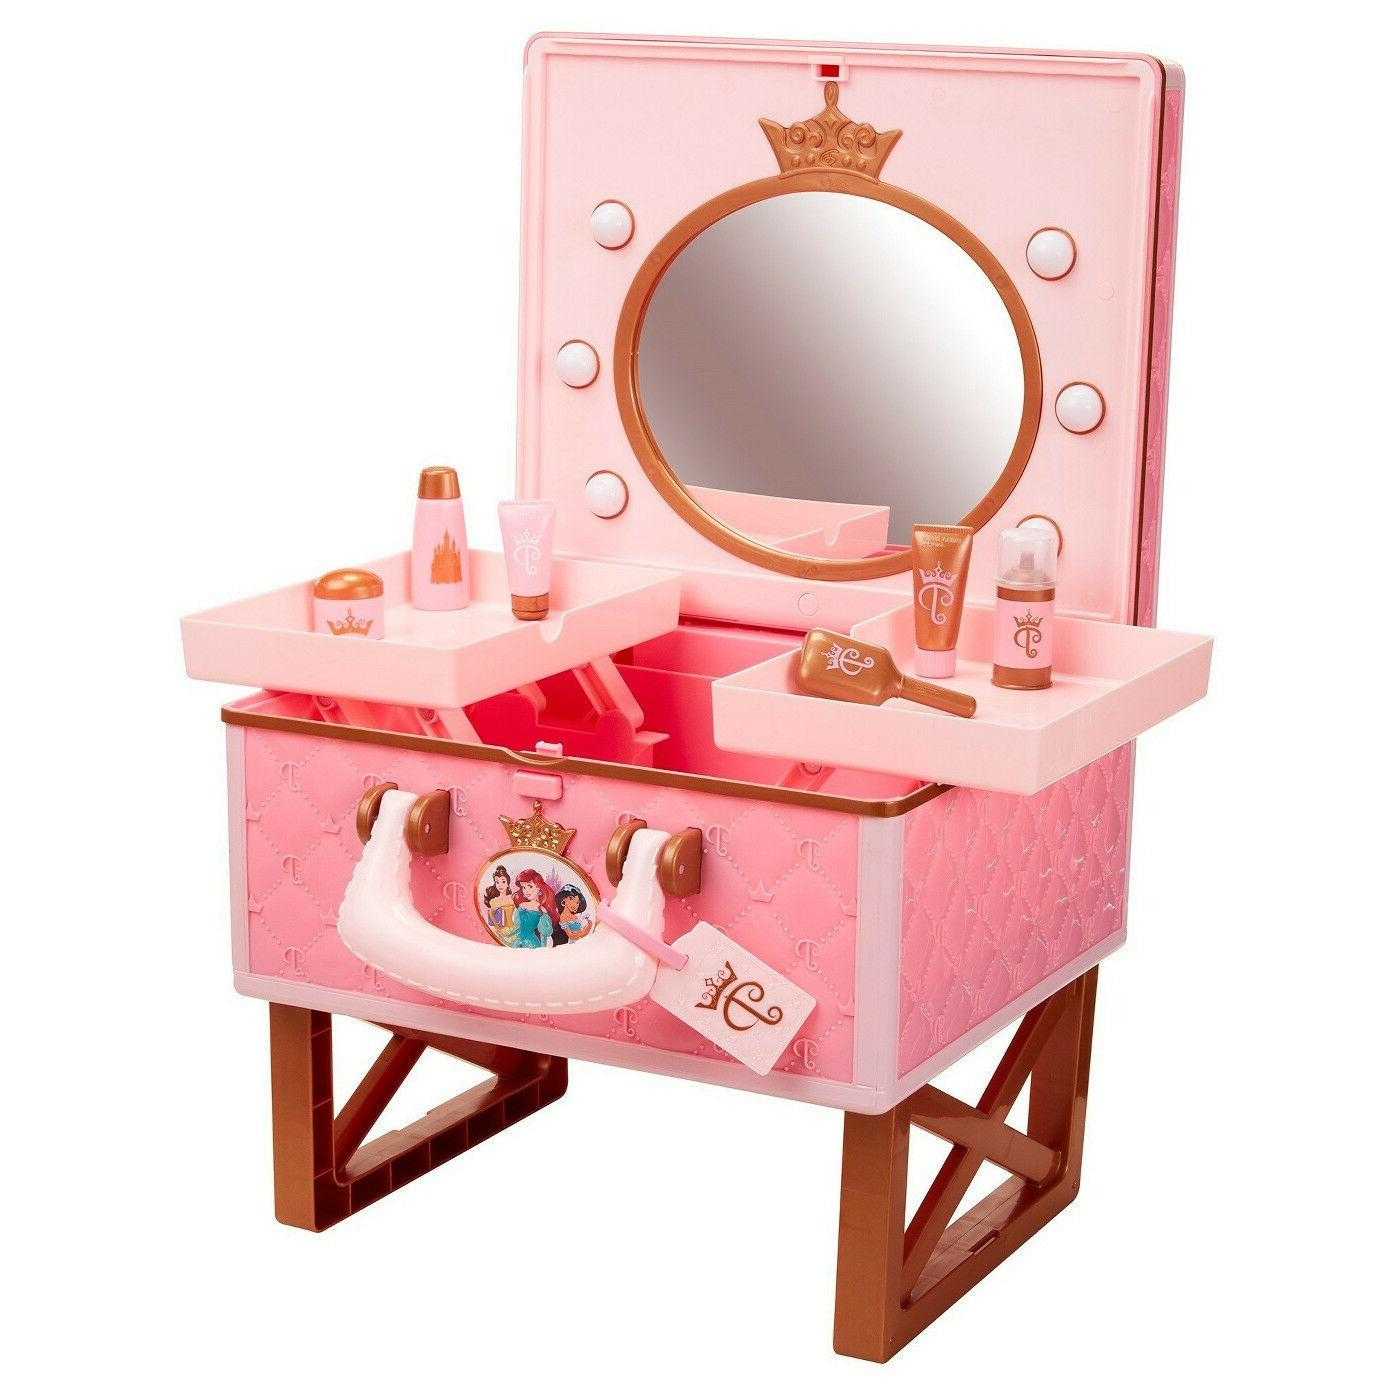 Disney Princess Style Collection Travel Light-Up Vanity Beau